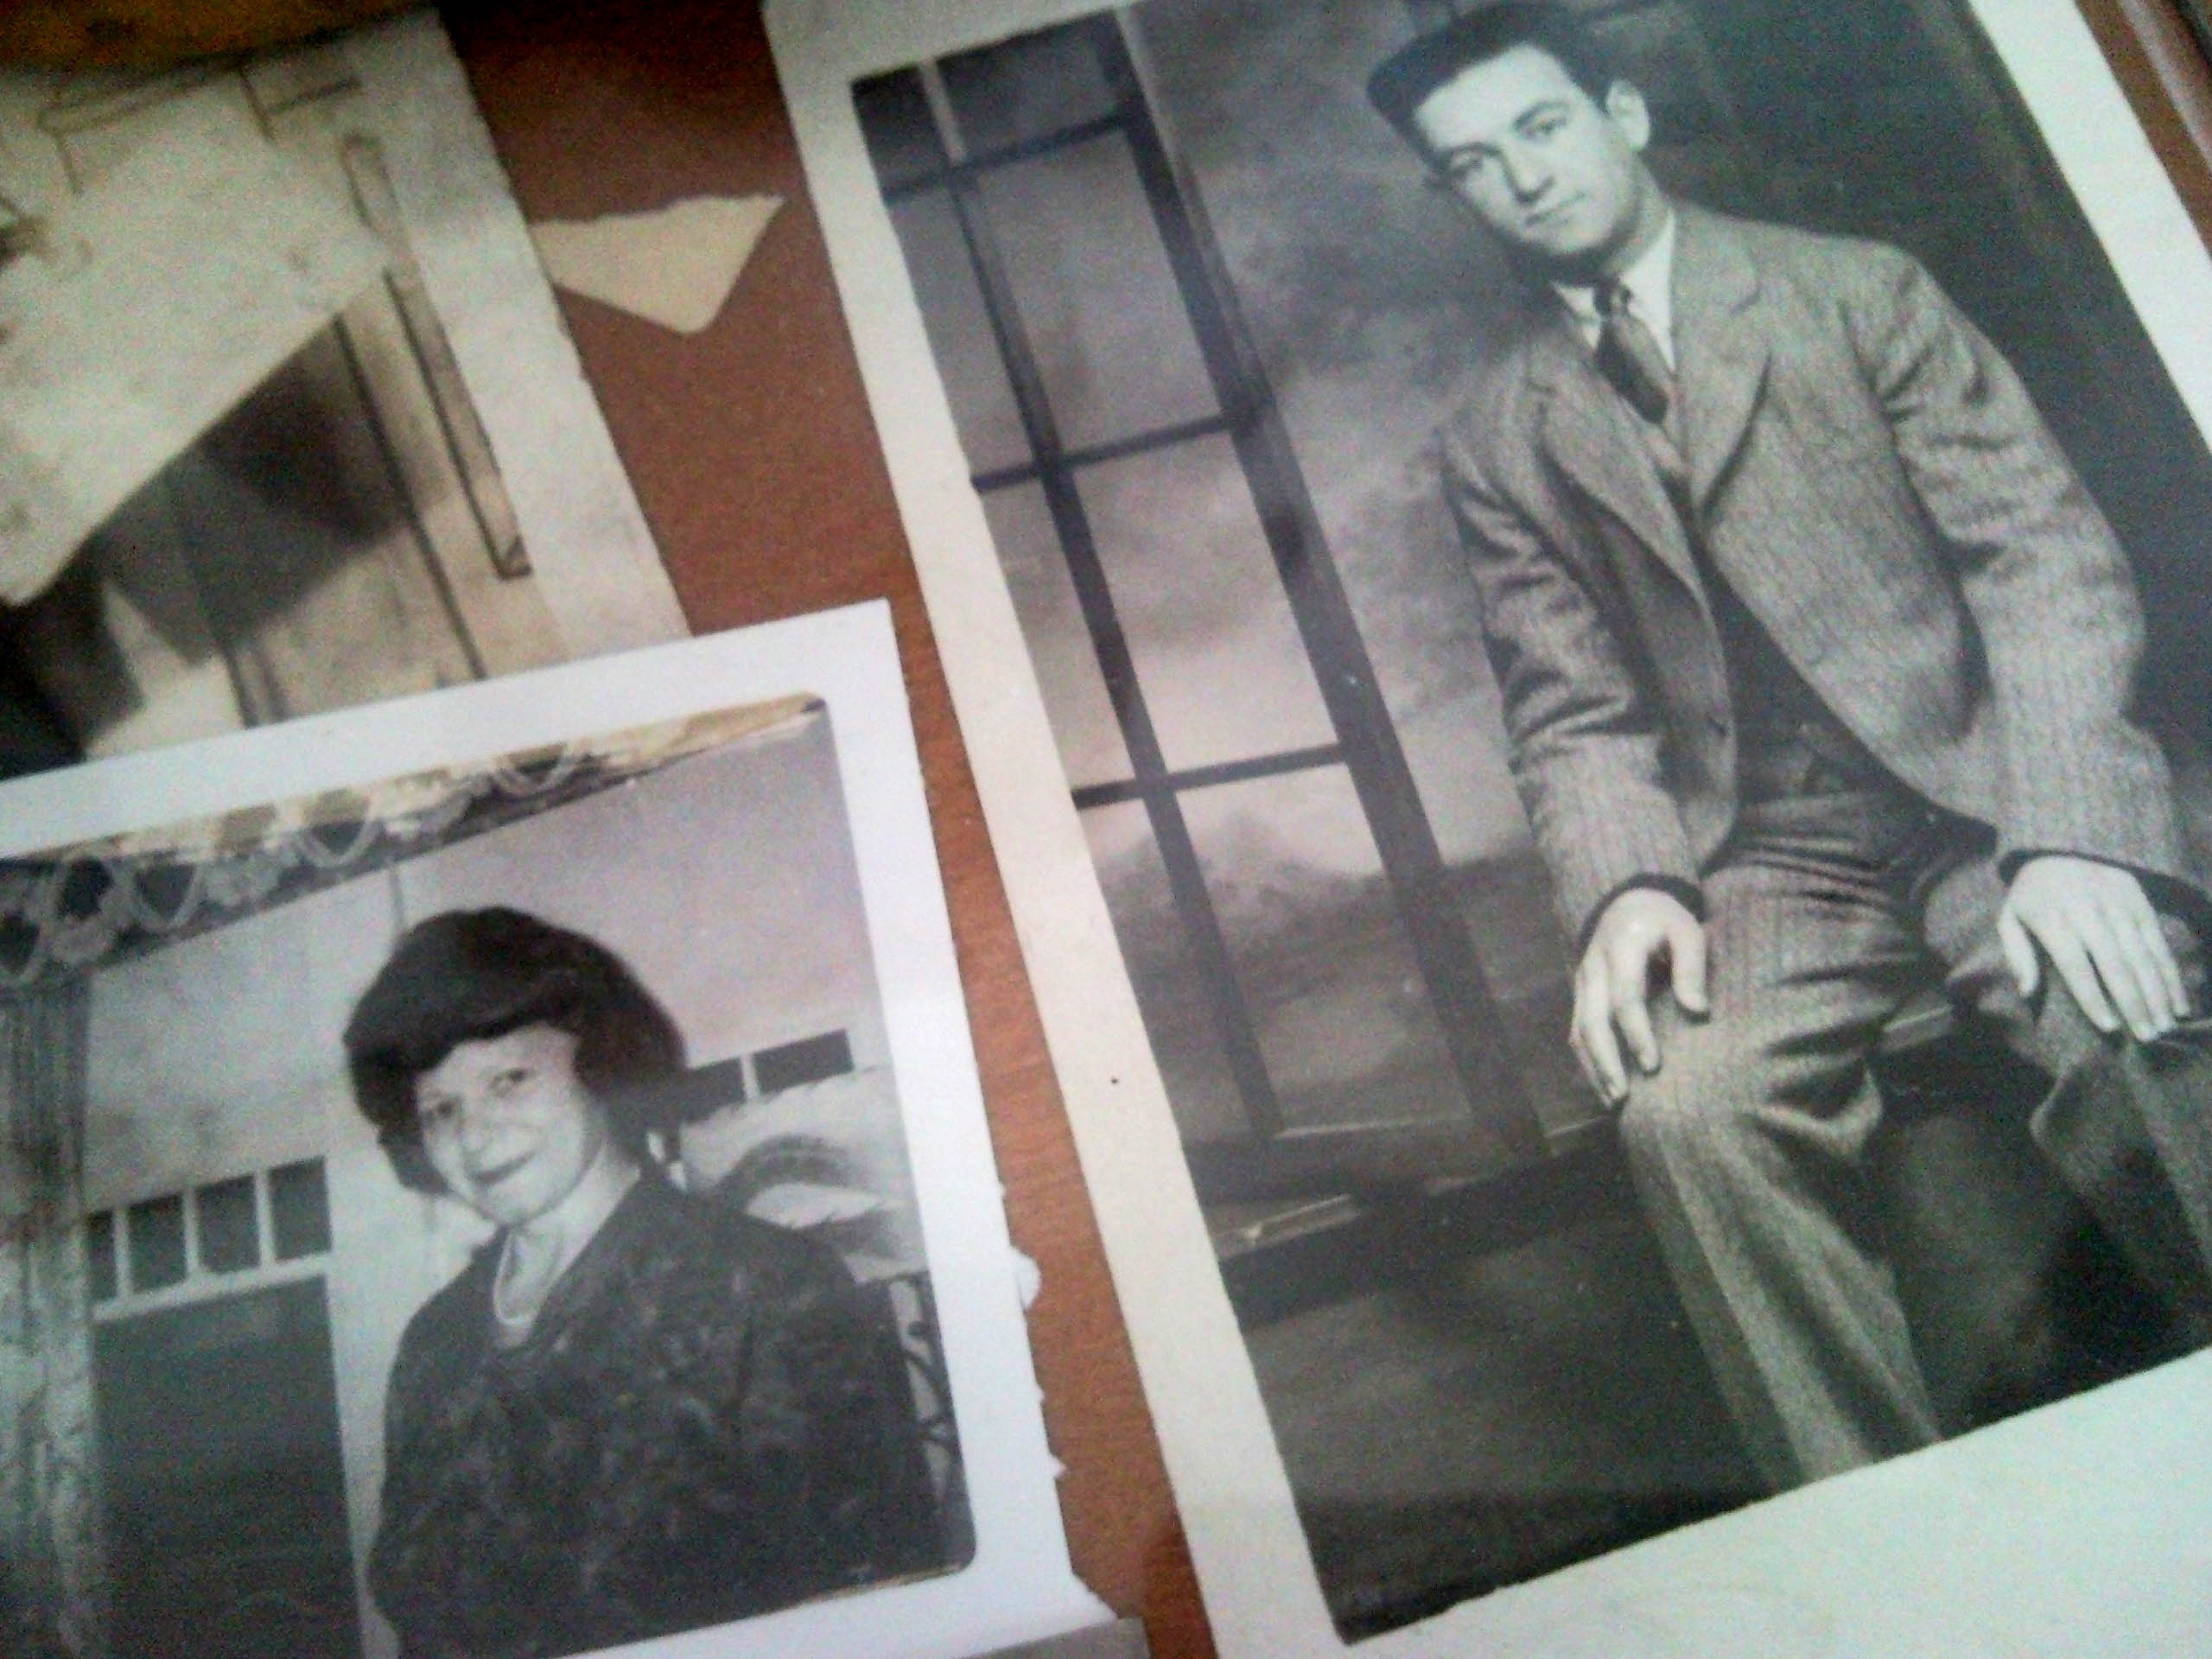 Northern Hills Assited Living Resident Frances Lelchook shares family photographs of her late husband and herself